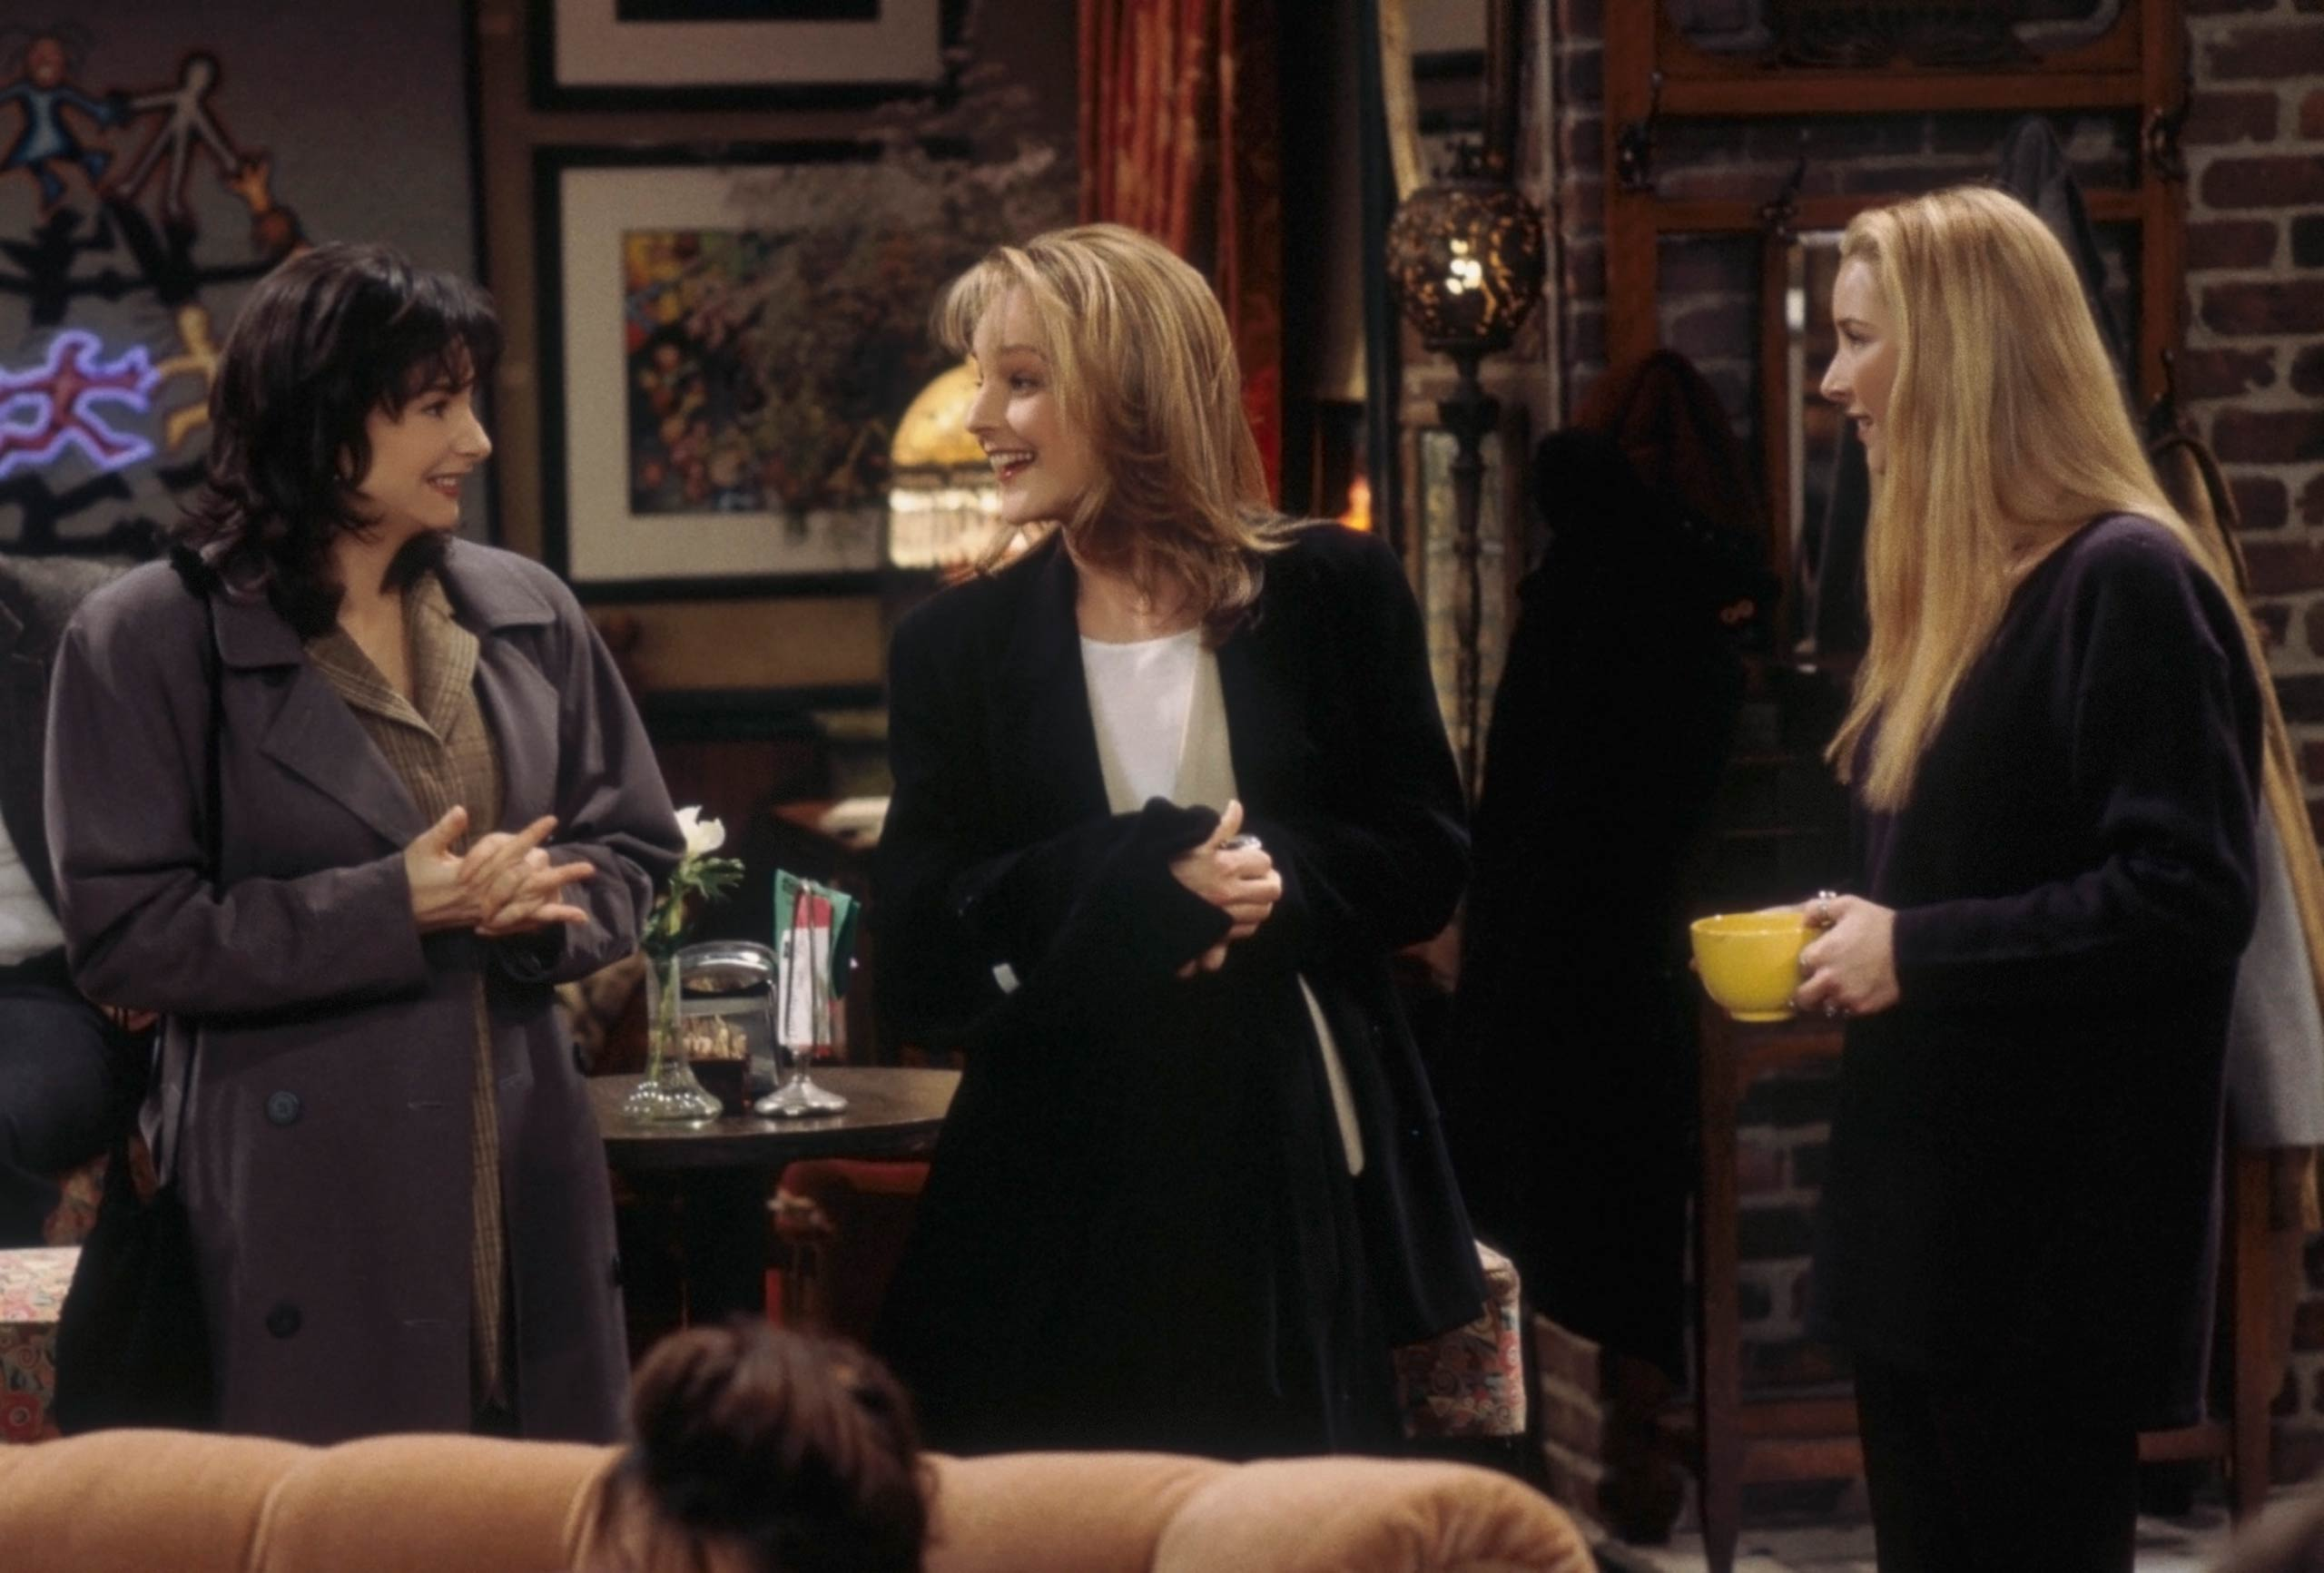 <strong>Helen Hunt</strong> – In a confusing crossover, Hunt (a <i>Mad About You</i> star) mistakes Phoebe for her twin sister Ursula (a real character played by Lisa Kudrow in both <i>Friends</i> and <i>Mad About You</i>)